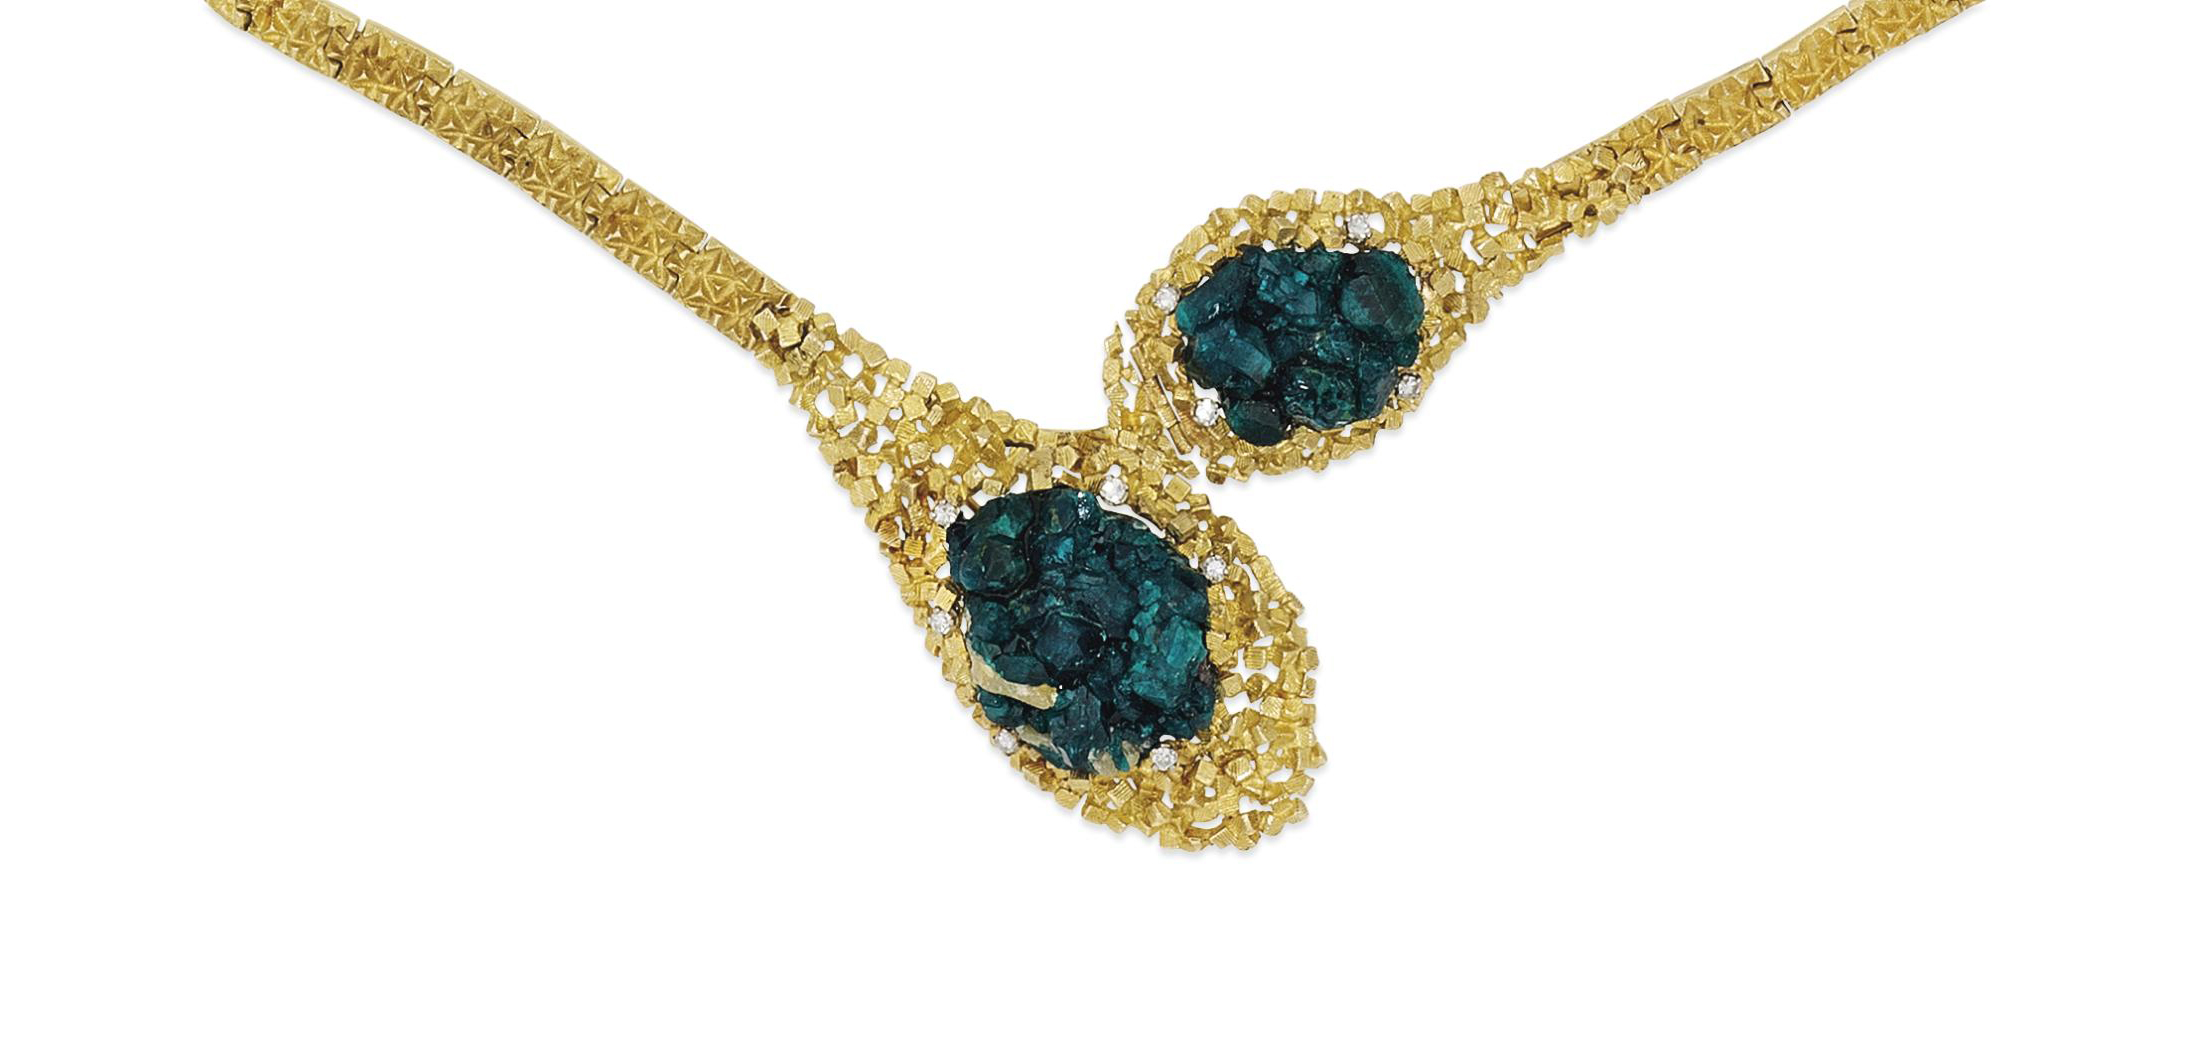 A dioptase crystal and diamond-set necklace / brooch, by John Donald